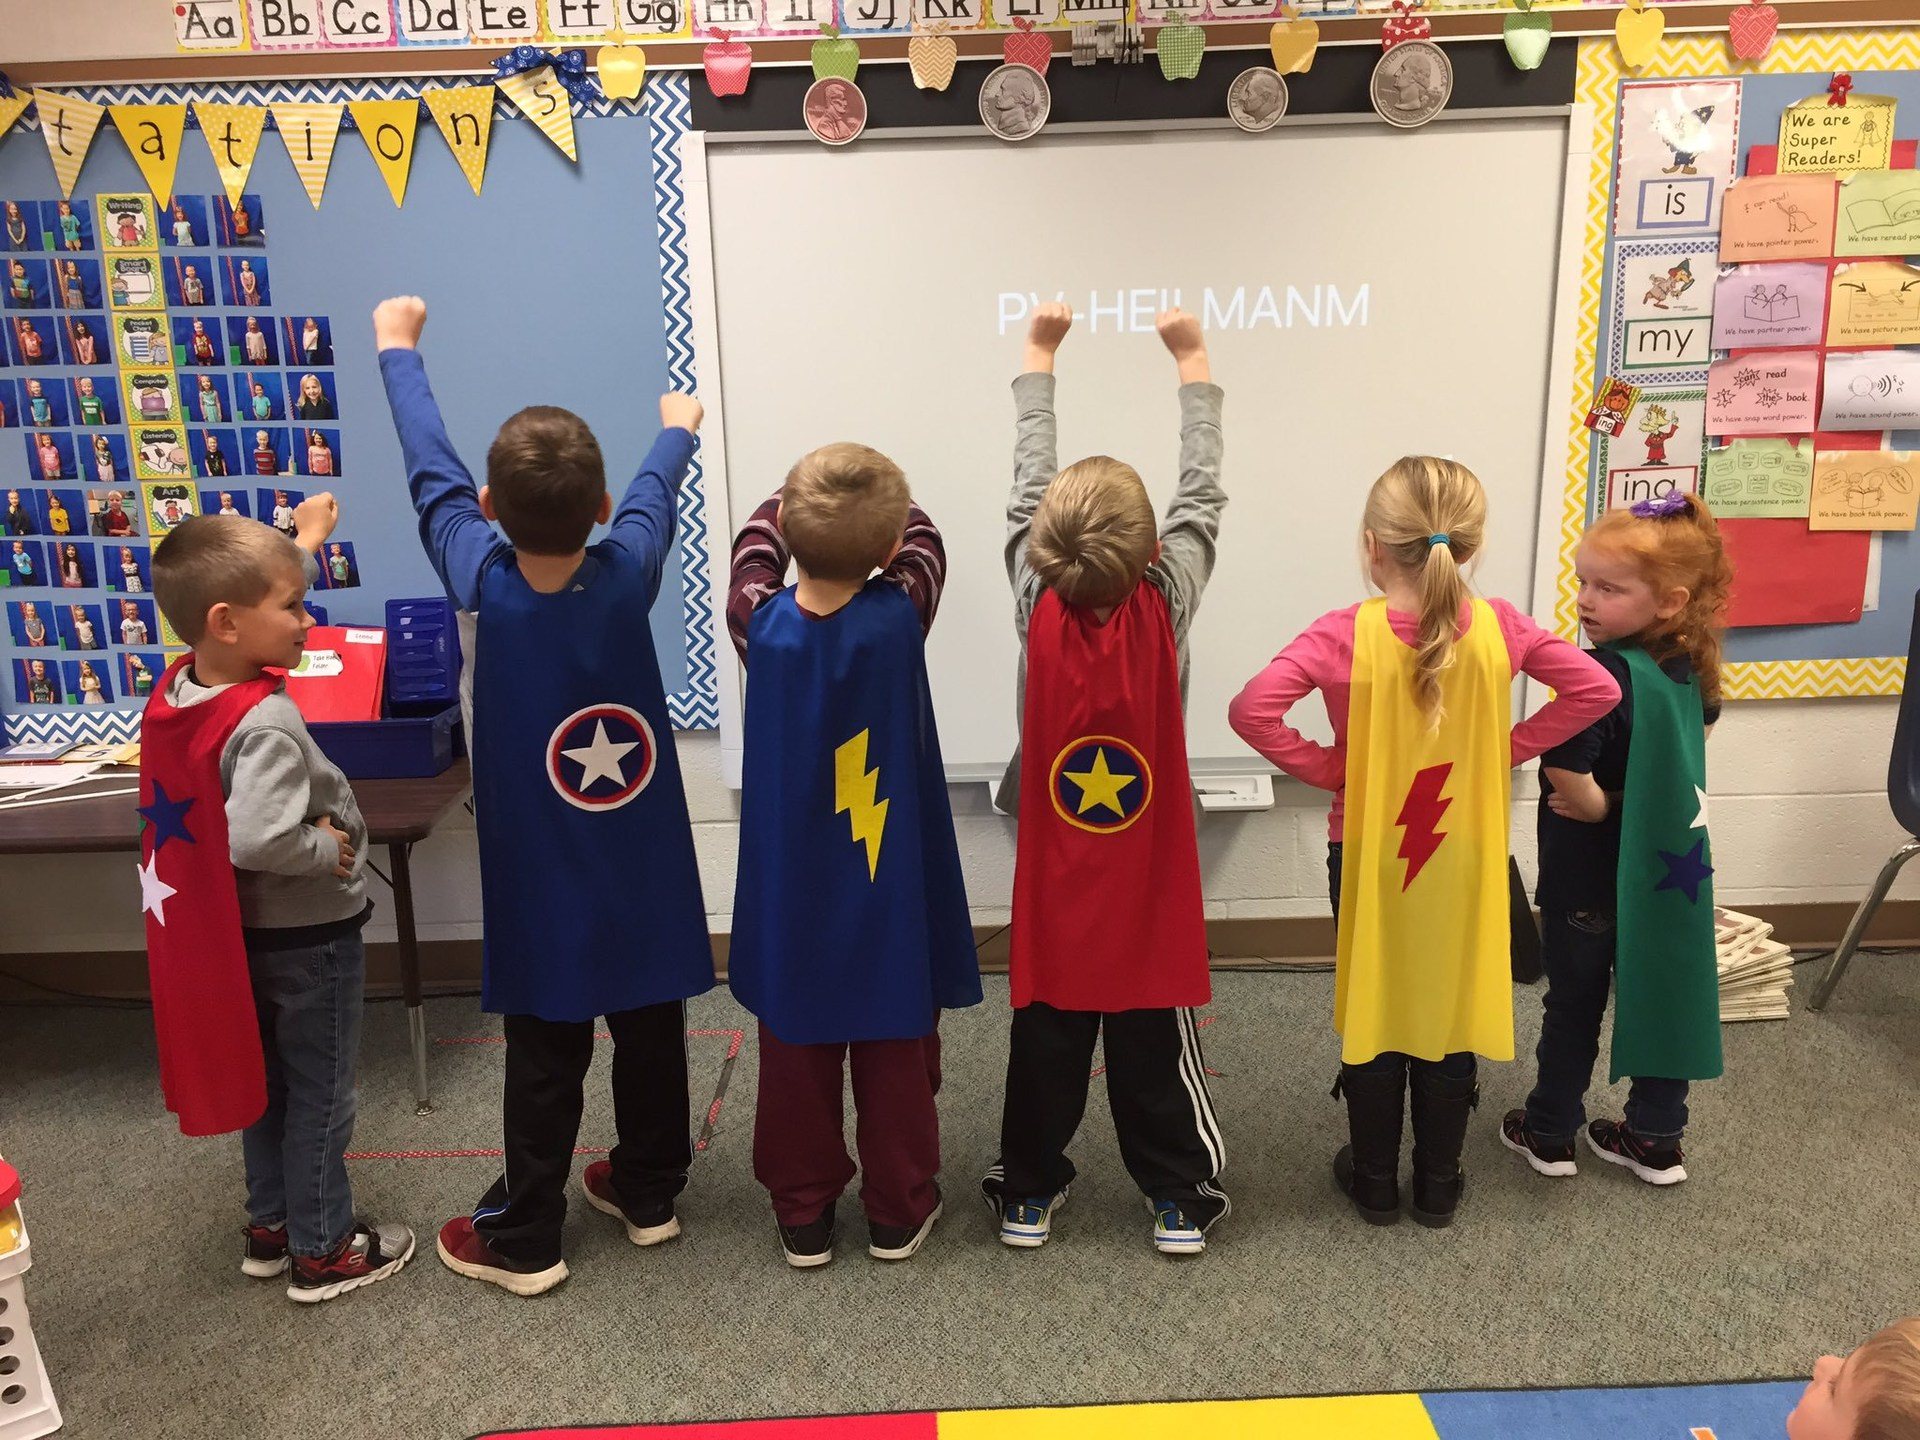 Six young students in superhero capes are engaged in learning at the whiteboard in the classroom.